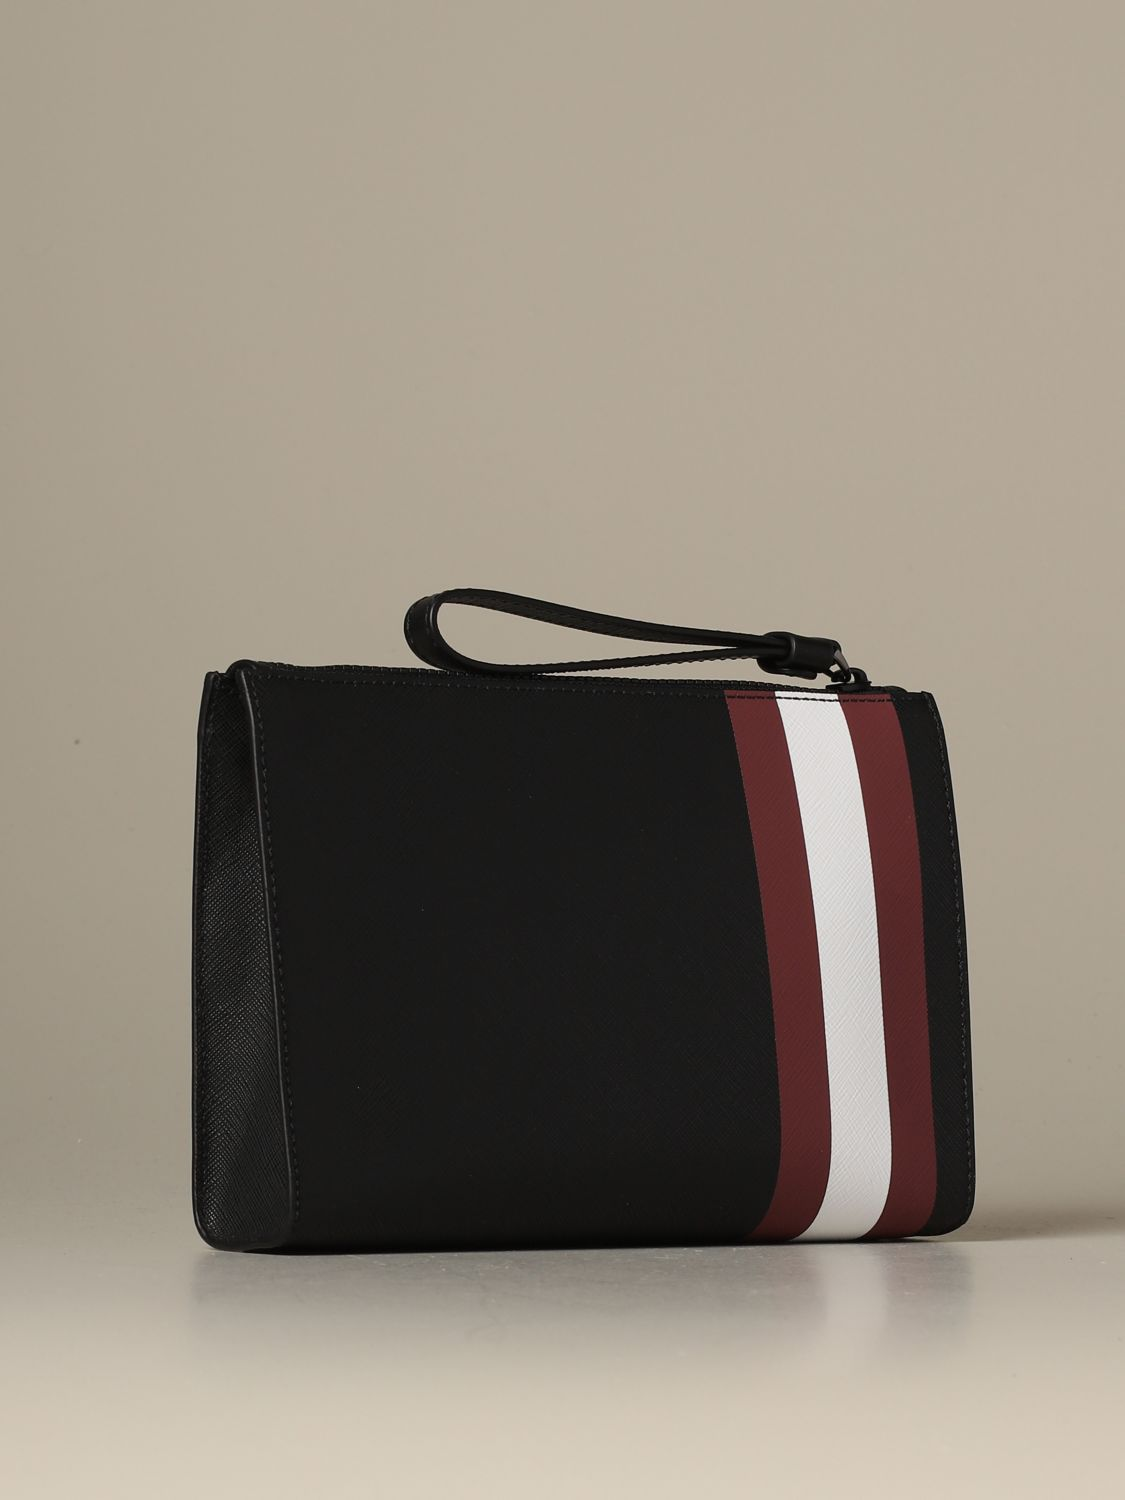 Briefcase Bally: Skid Bally clutch bag in coated canvas with trainspotting red 2